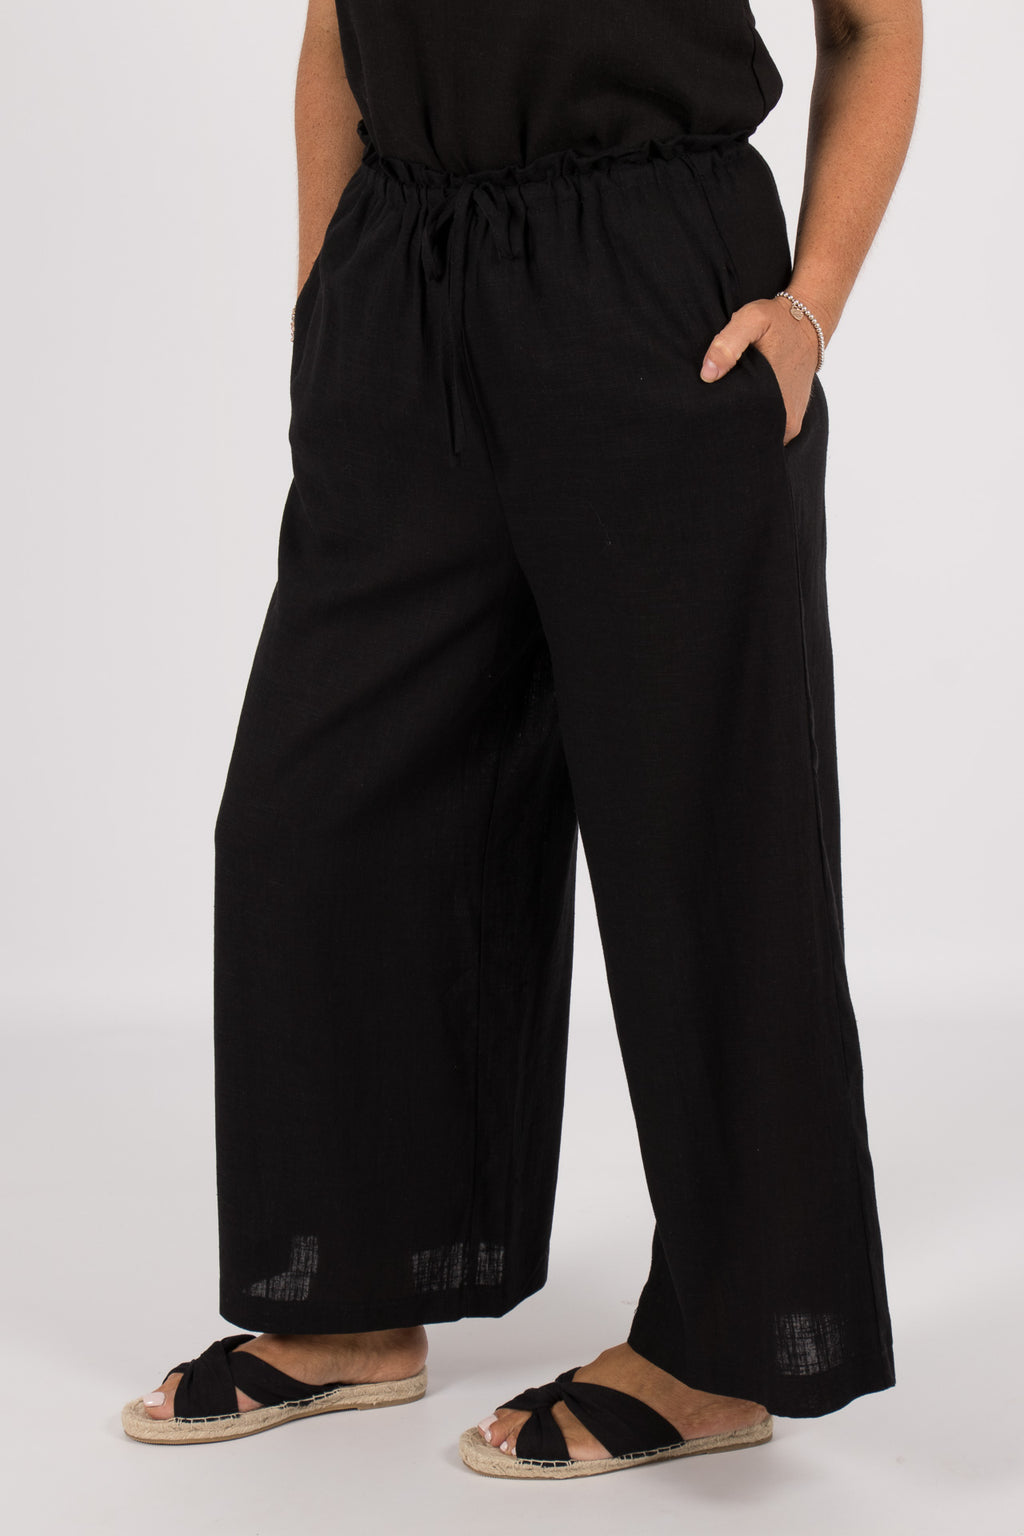 Quinn Linen Pants in Black